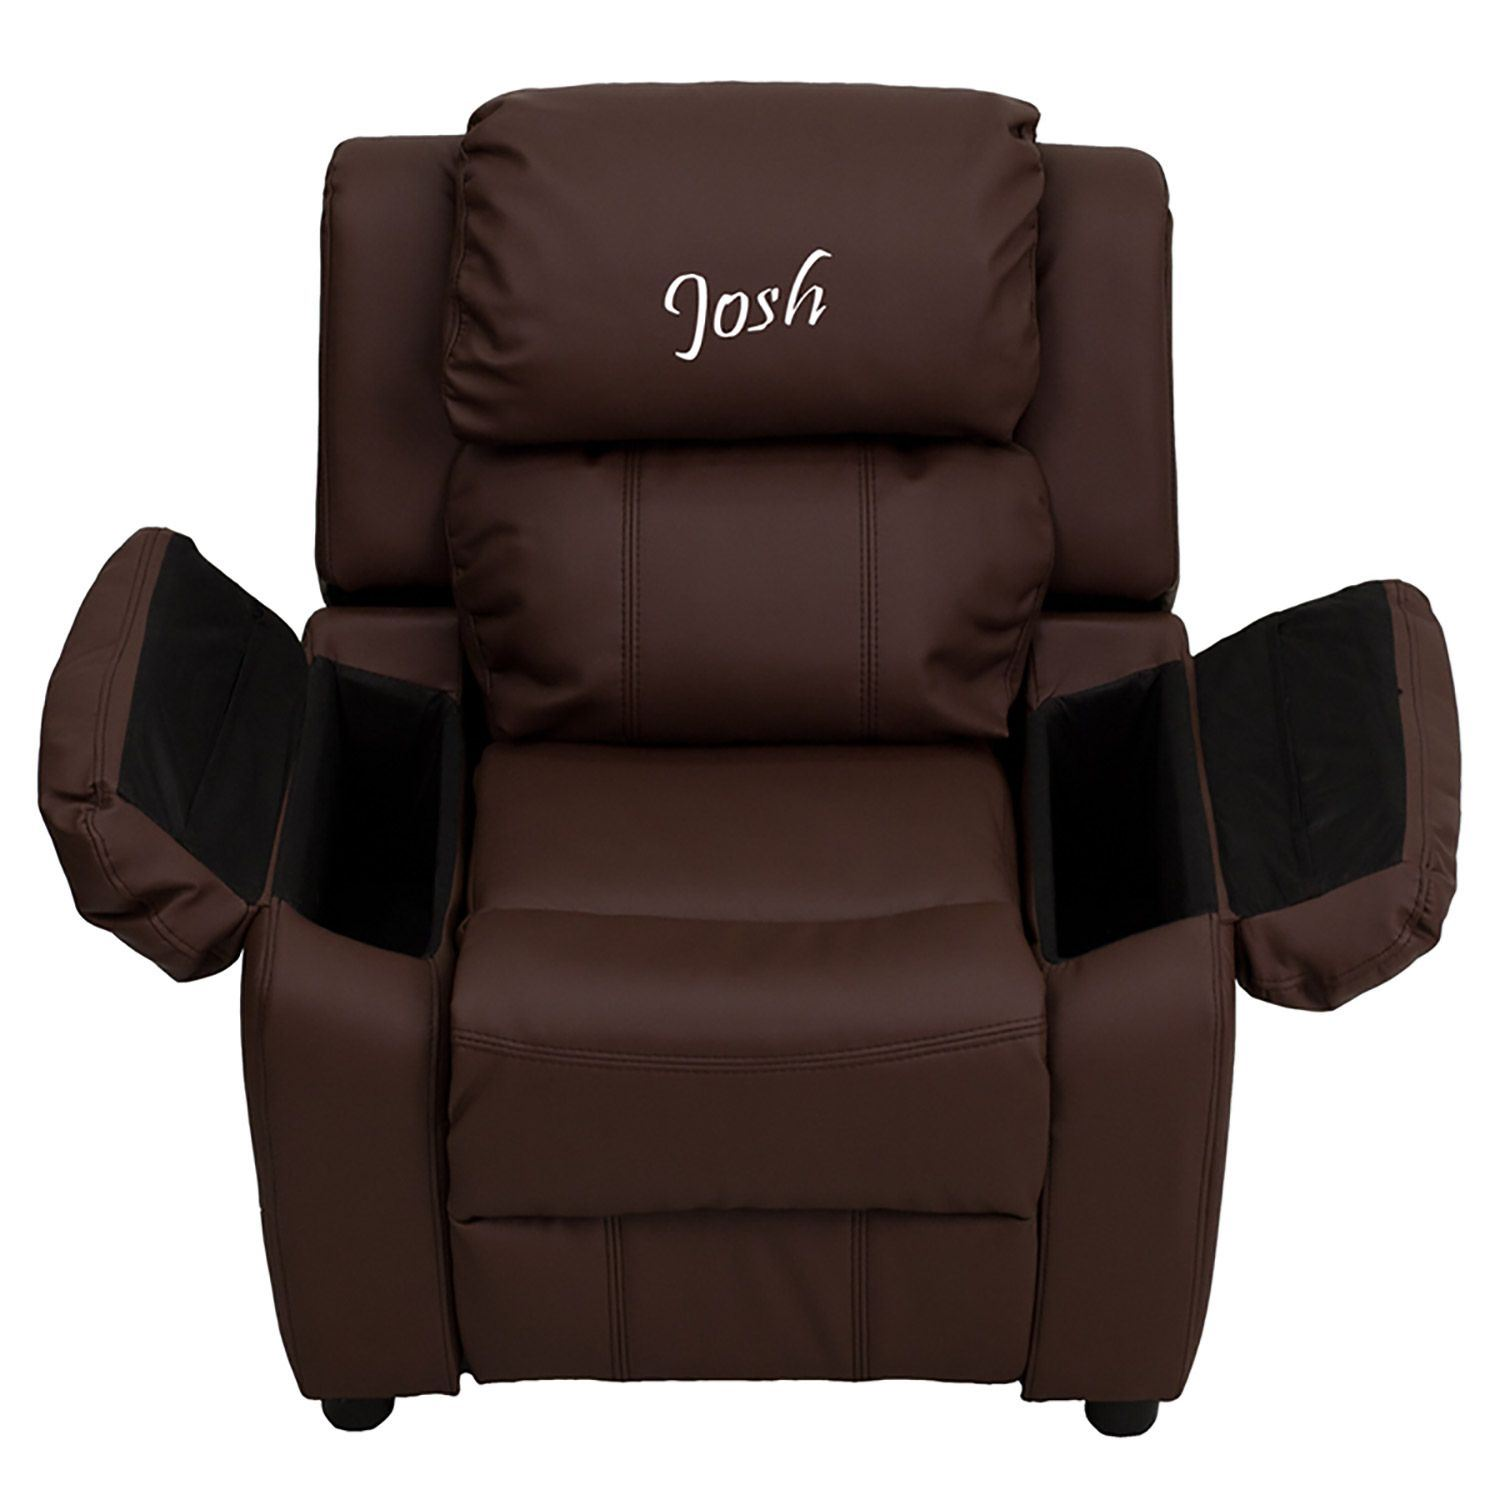 Personalized Deluxe Brown Leather Kids Recliner D Bt